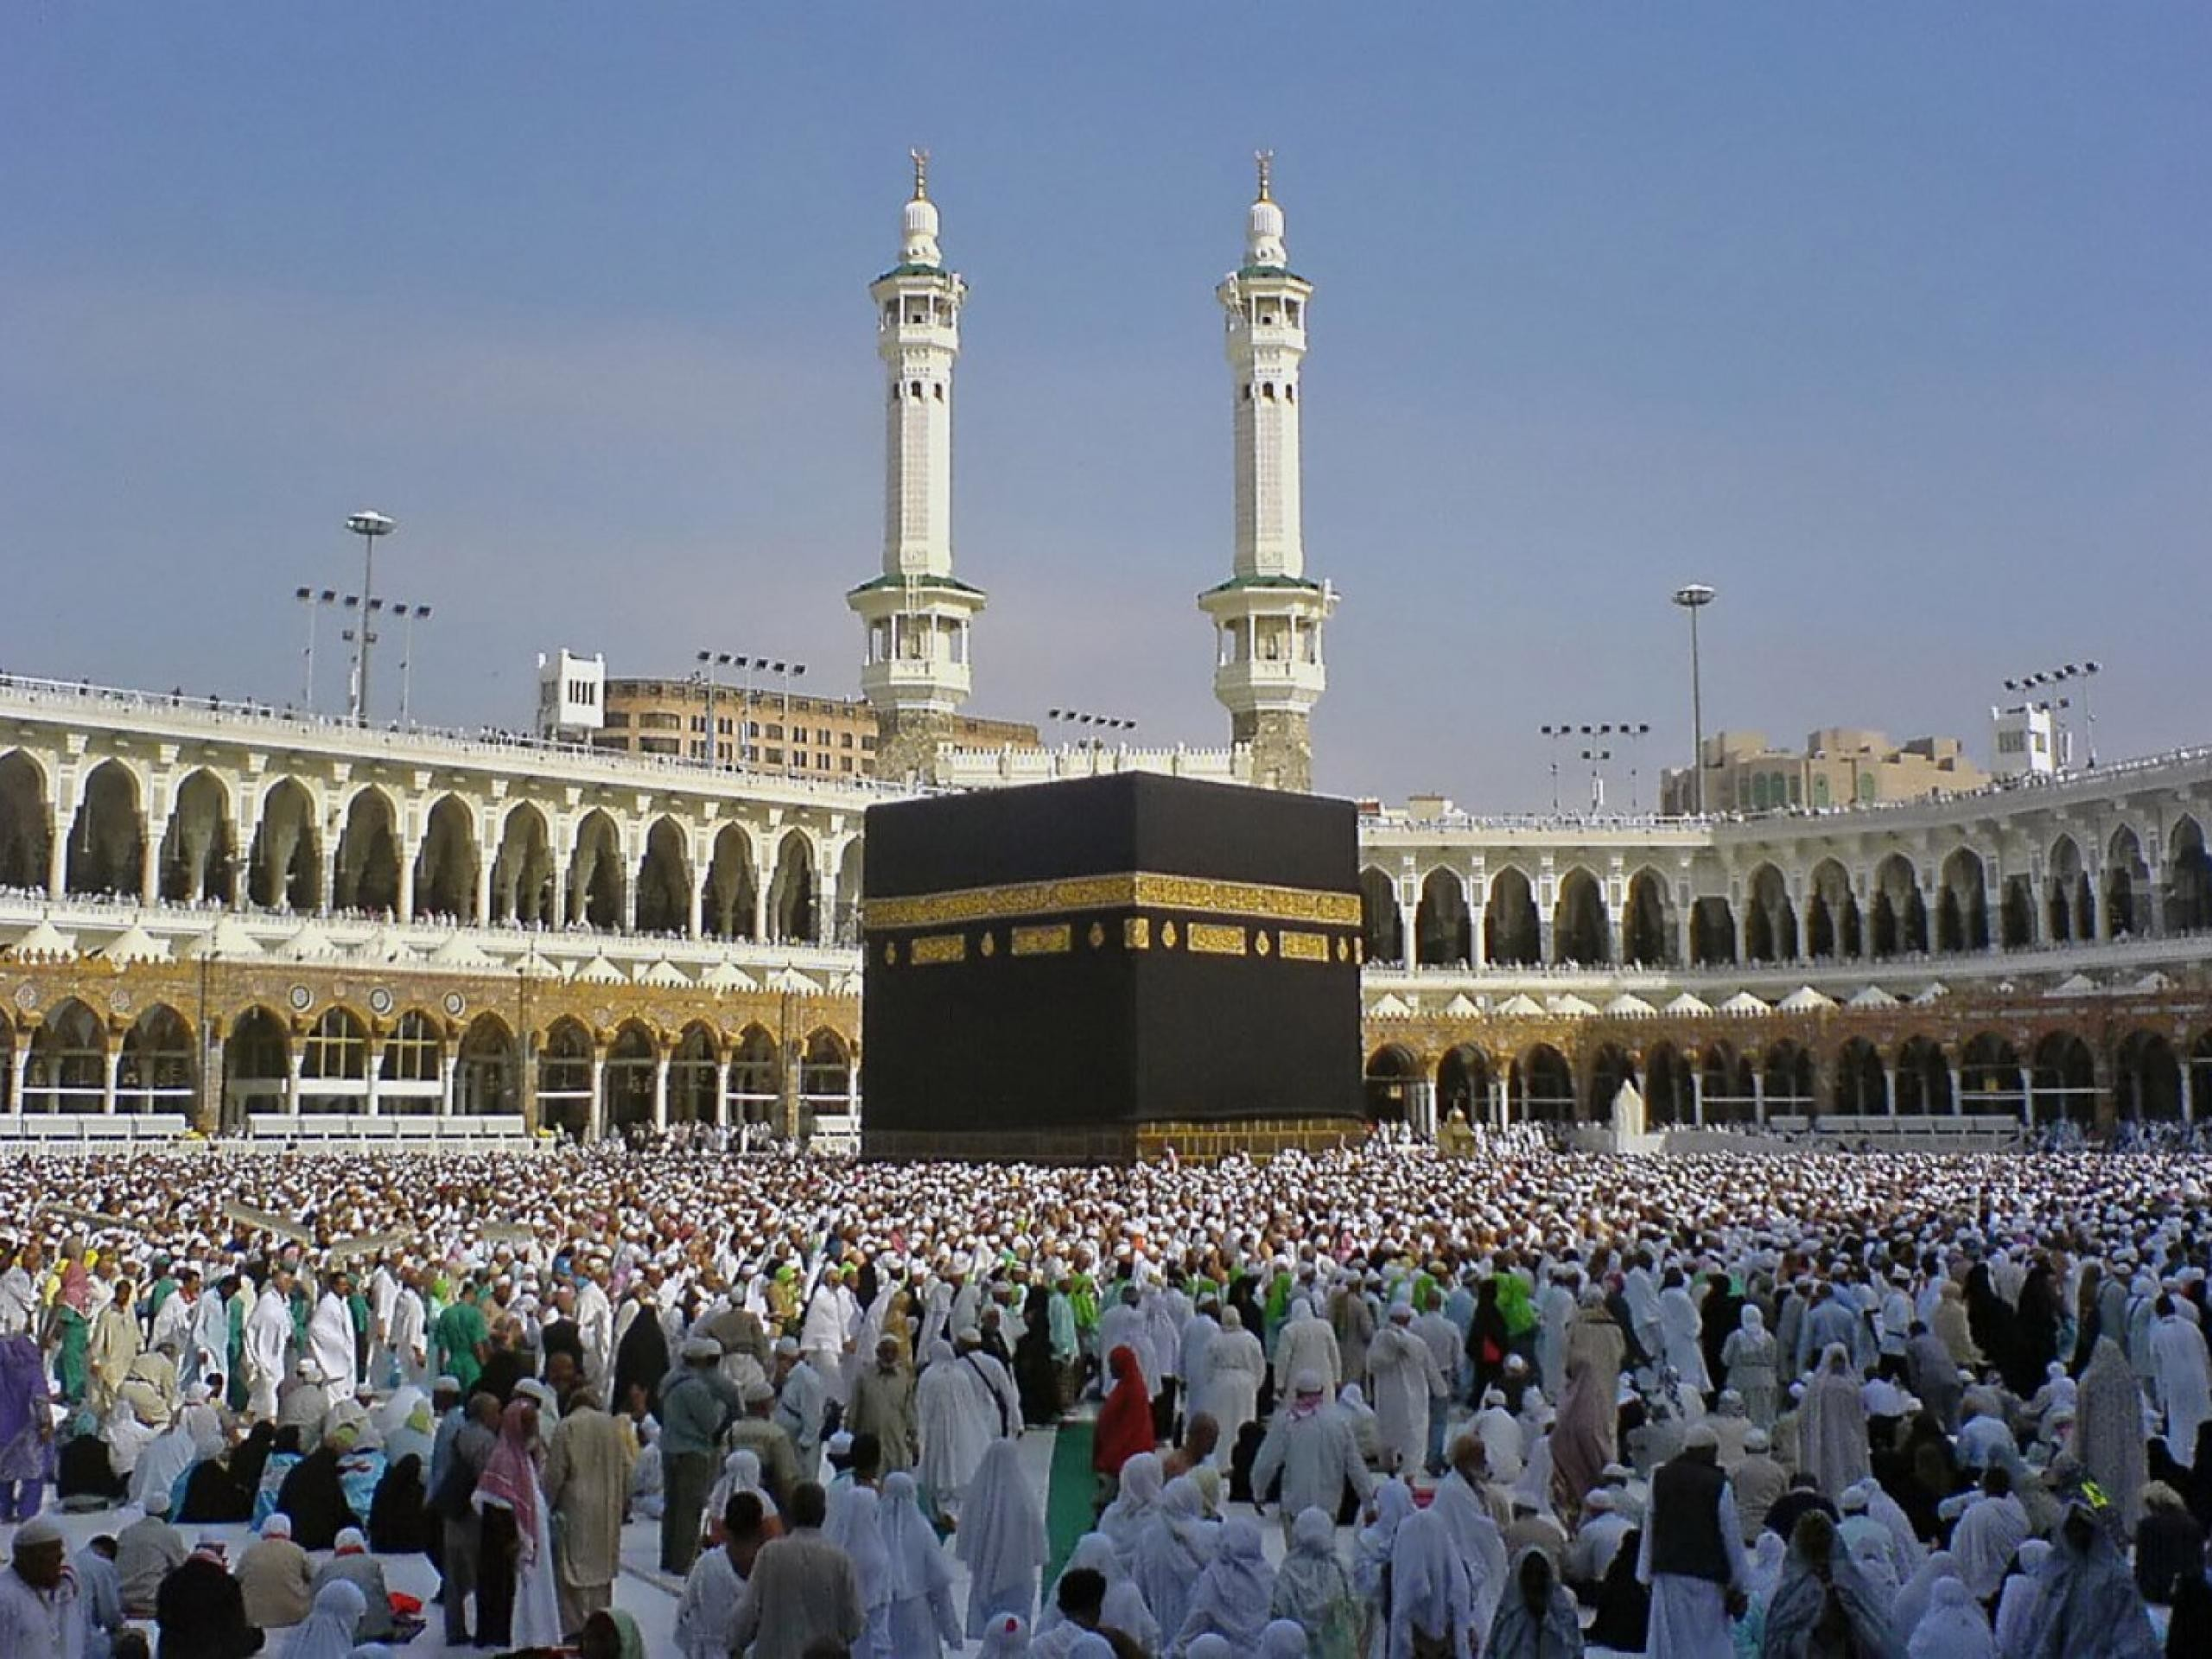 2560x1920 Download Free Mecca Kabba World City 525678 | HD Wallpapers .